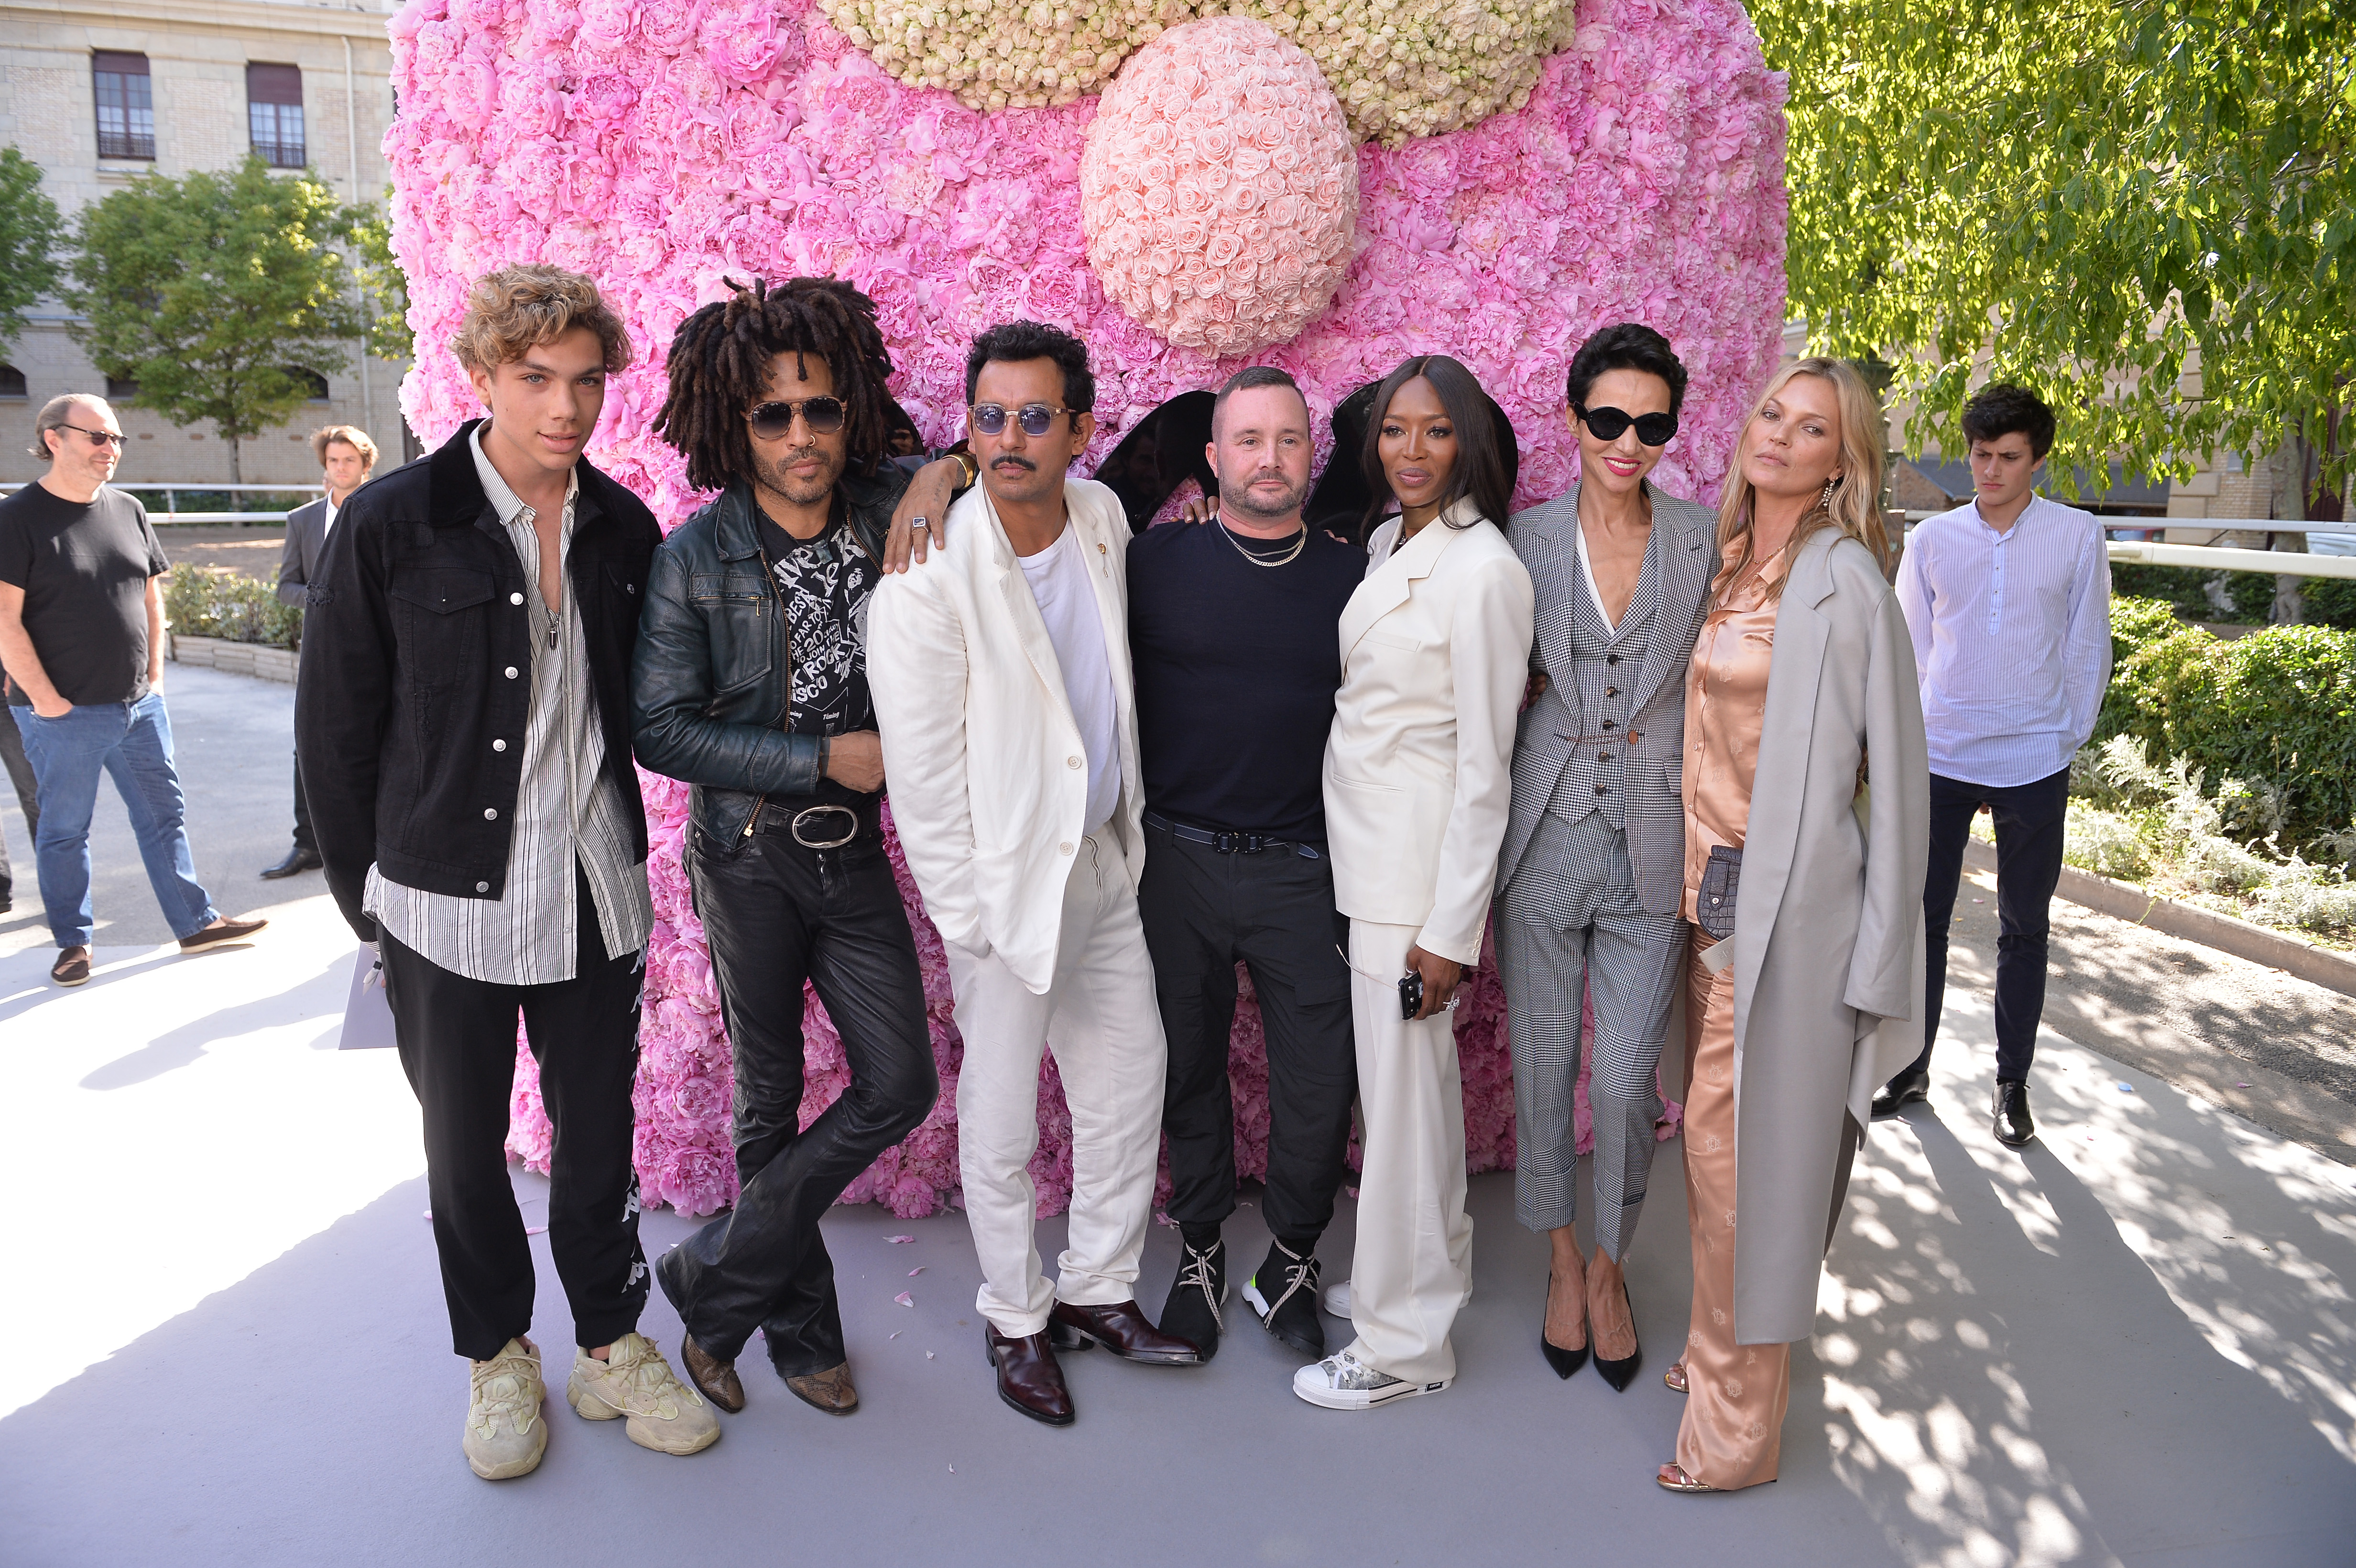 PARIS, FRANCE - JUNE 23:  (2L-R) Lenny Kravitz, Haider Ackermann, Kim Jones, Naomi Campbell, Farida Khelfa and Kate Moss  attend the Dior Homme Menswear Spring/Summer 2019 show as part of Paris Fashion Week on June 23, 2018 in Paris, France.  (Photo by Francois Durand/Getty Images for Dior)